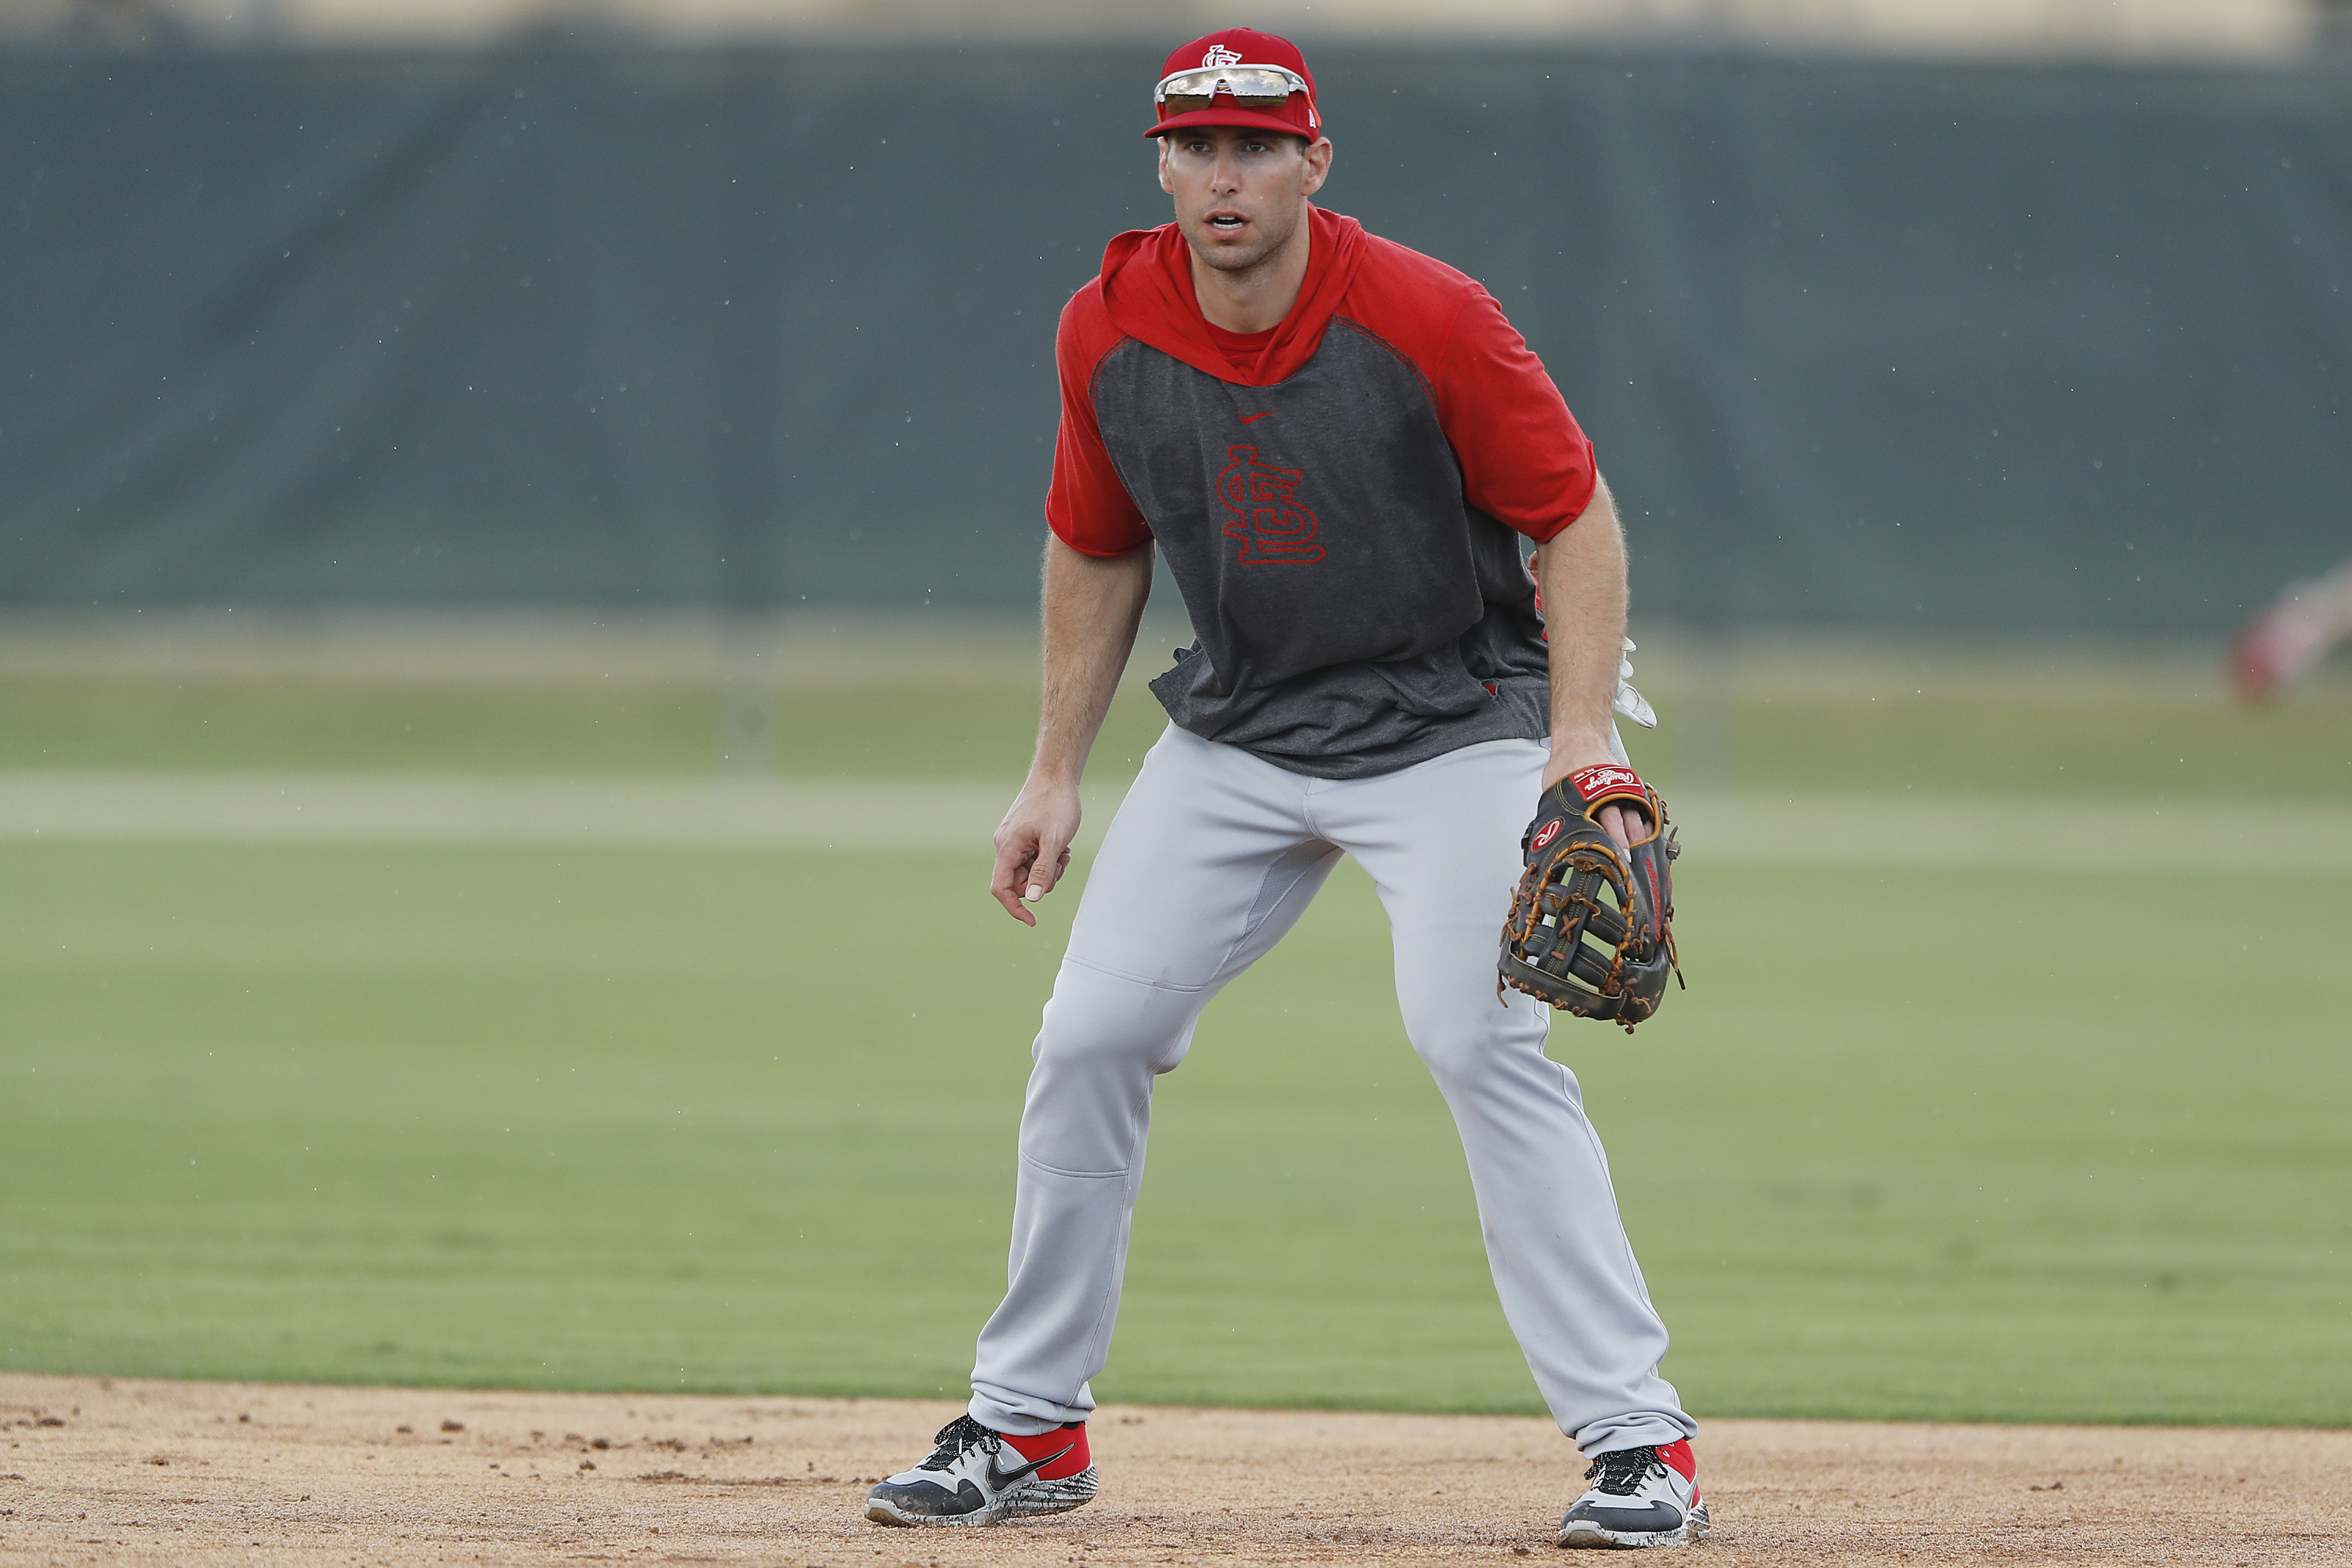 St. Louis Cardinals: What to make of Paul Goldschmidt's injury situation